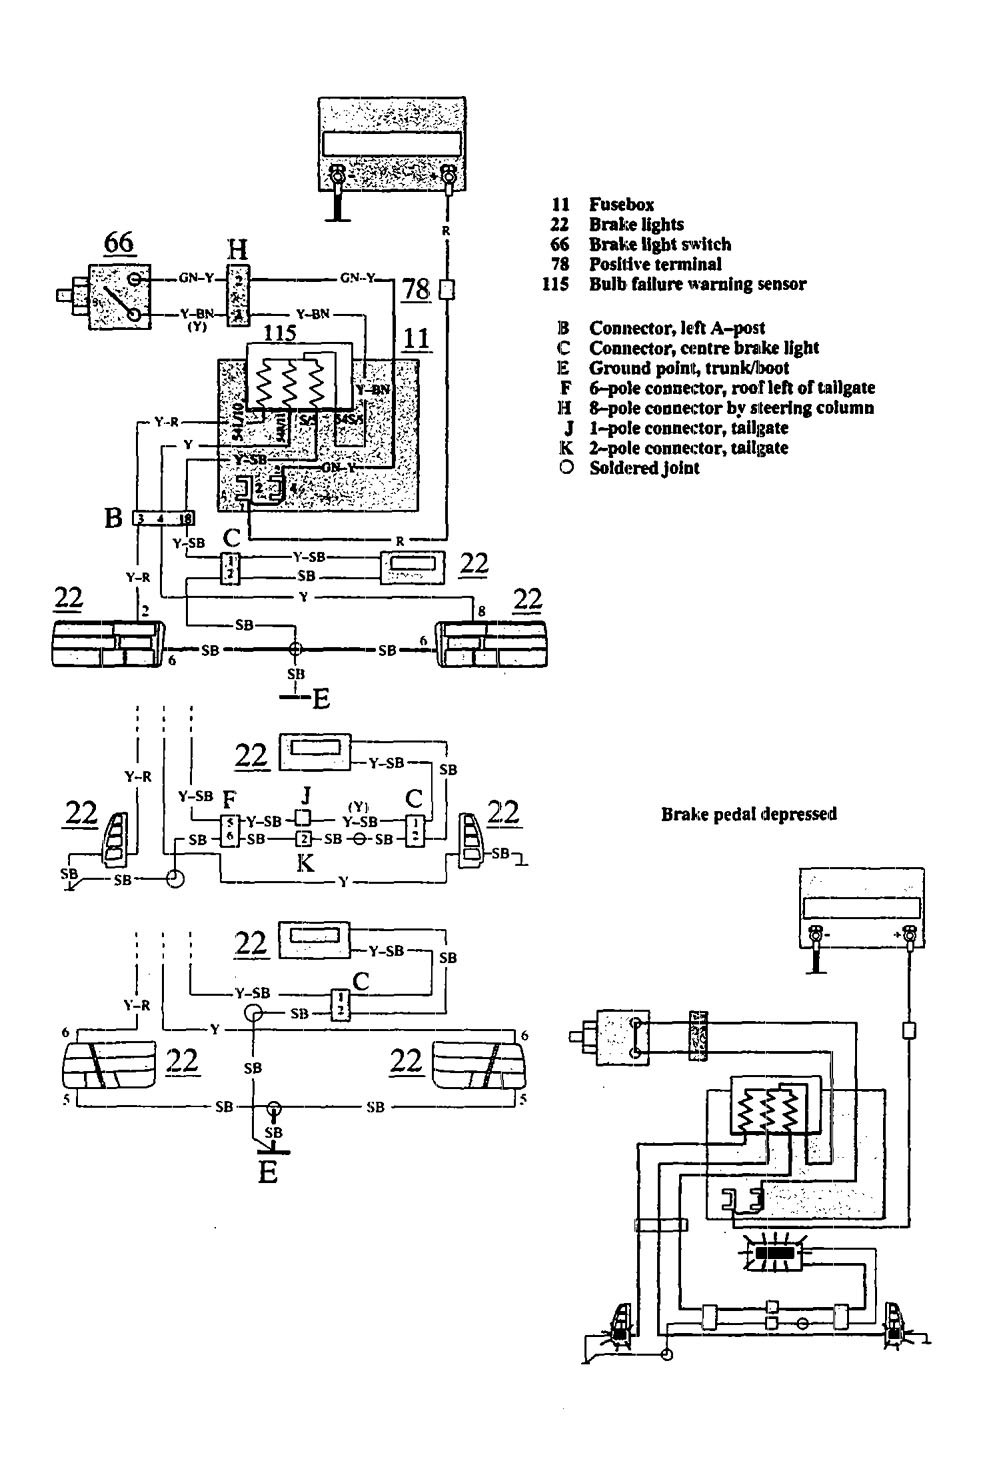 Volvo 240 Tailgate Wiring Diagram Complete Diagrams 1989 740 940 1991 Stop Lamp Carknowledge Rh Info 1992 Ac 1990 Alternator